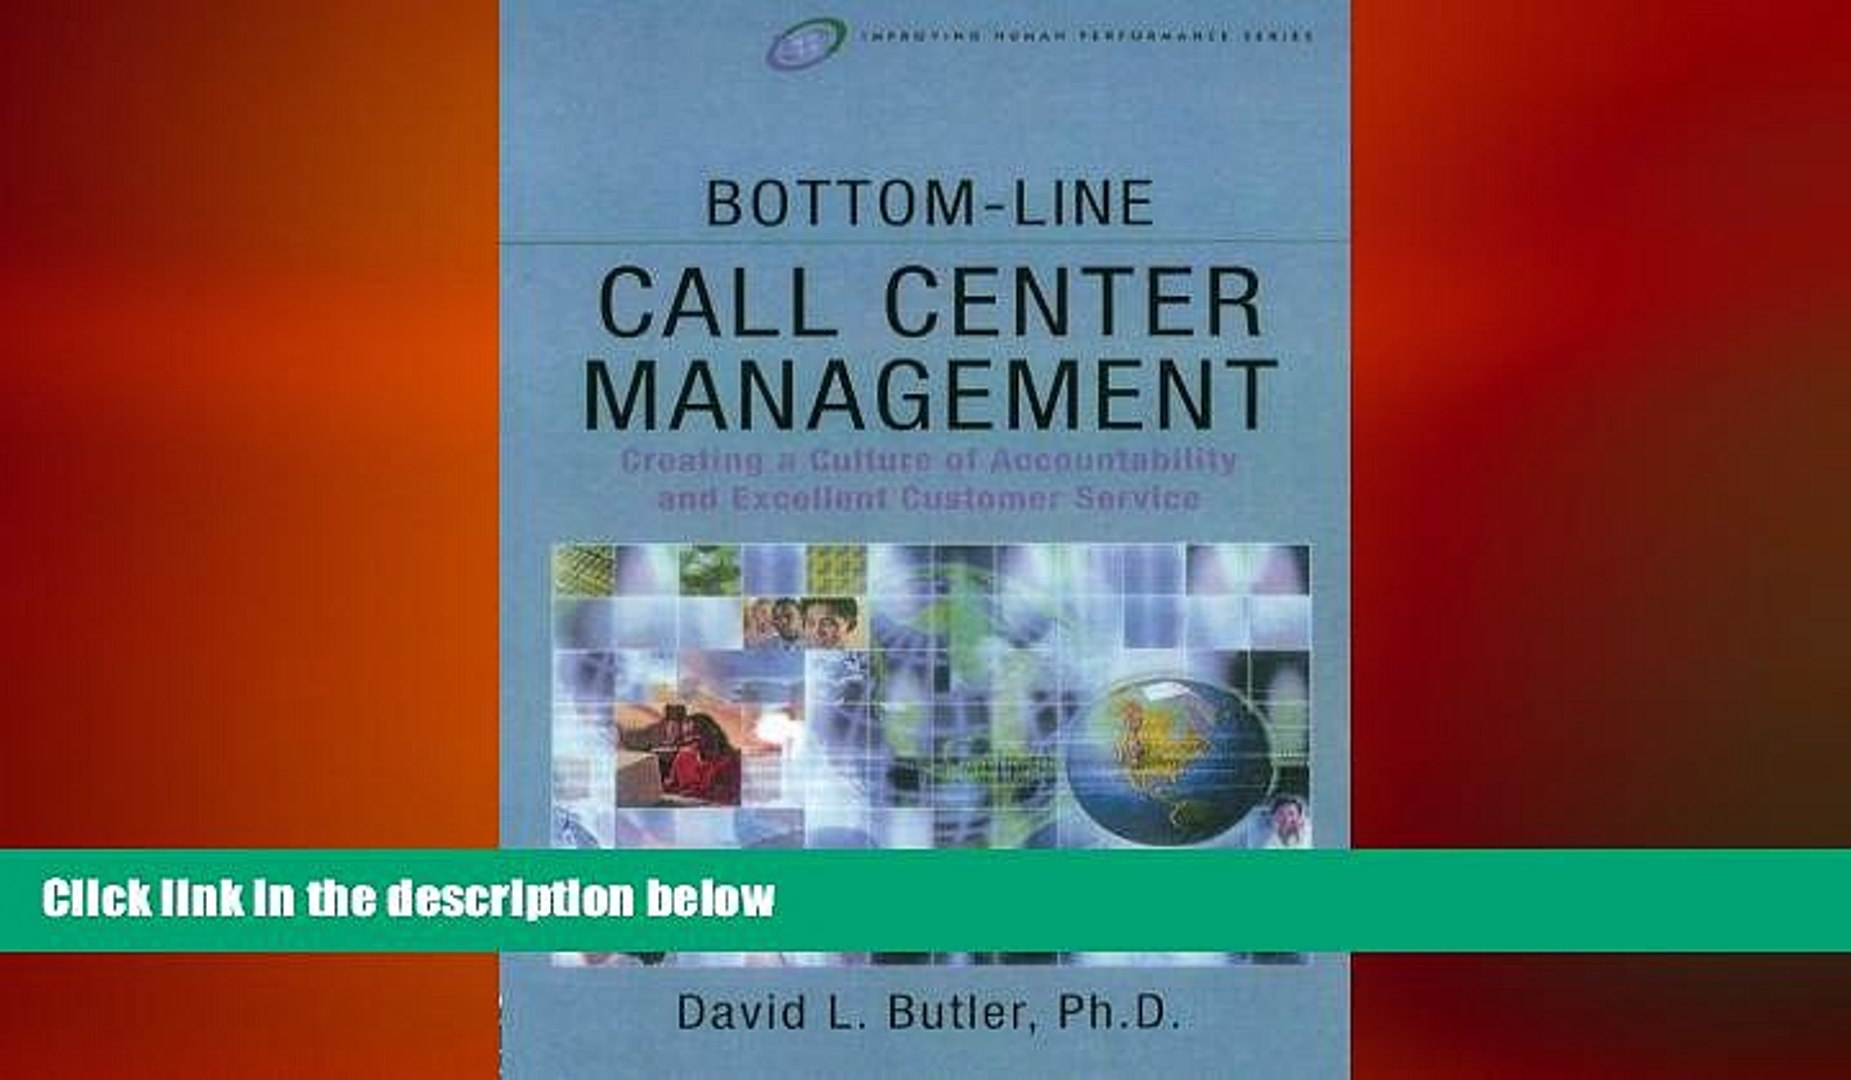 FREE DOWNLOAD  Bottom-Line Call Center Management (Improving Human Performance)  FREE BOOOK ONLINE